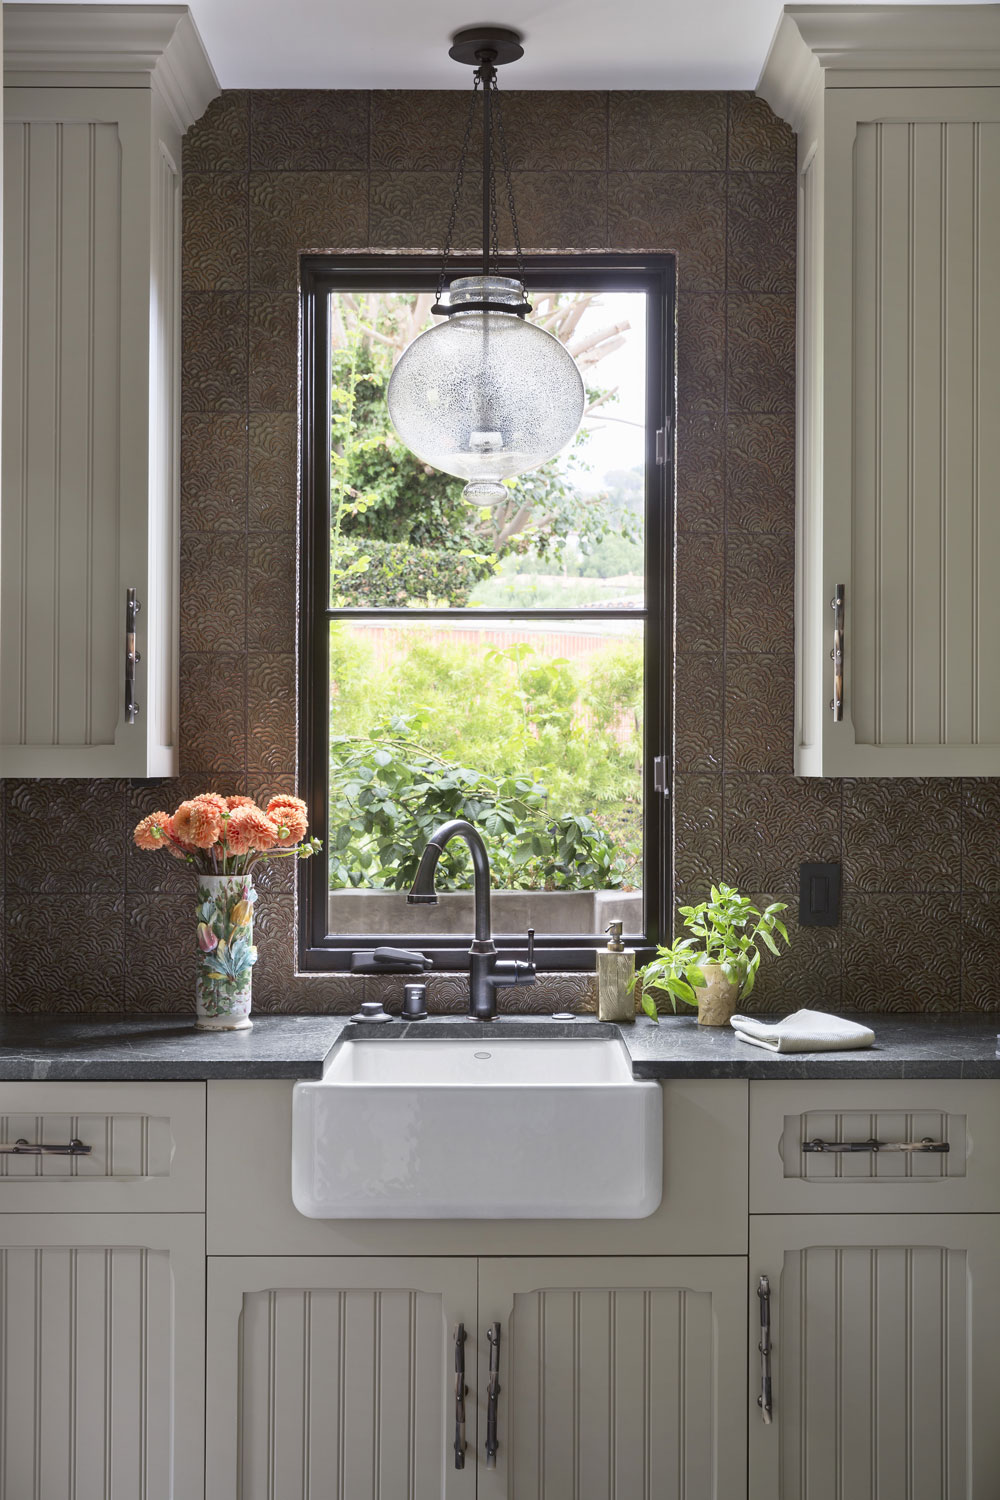 butlers-pantry-sink-traditional-cabinets-hammered-copper-premier.jpg